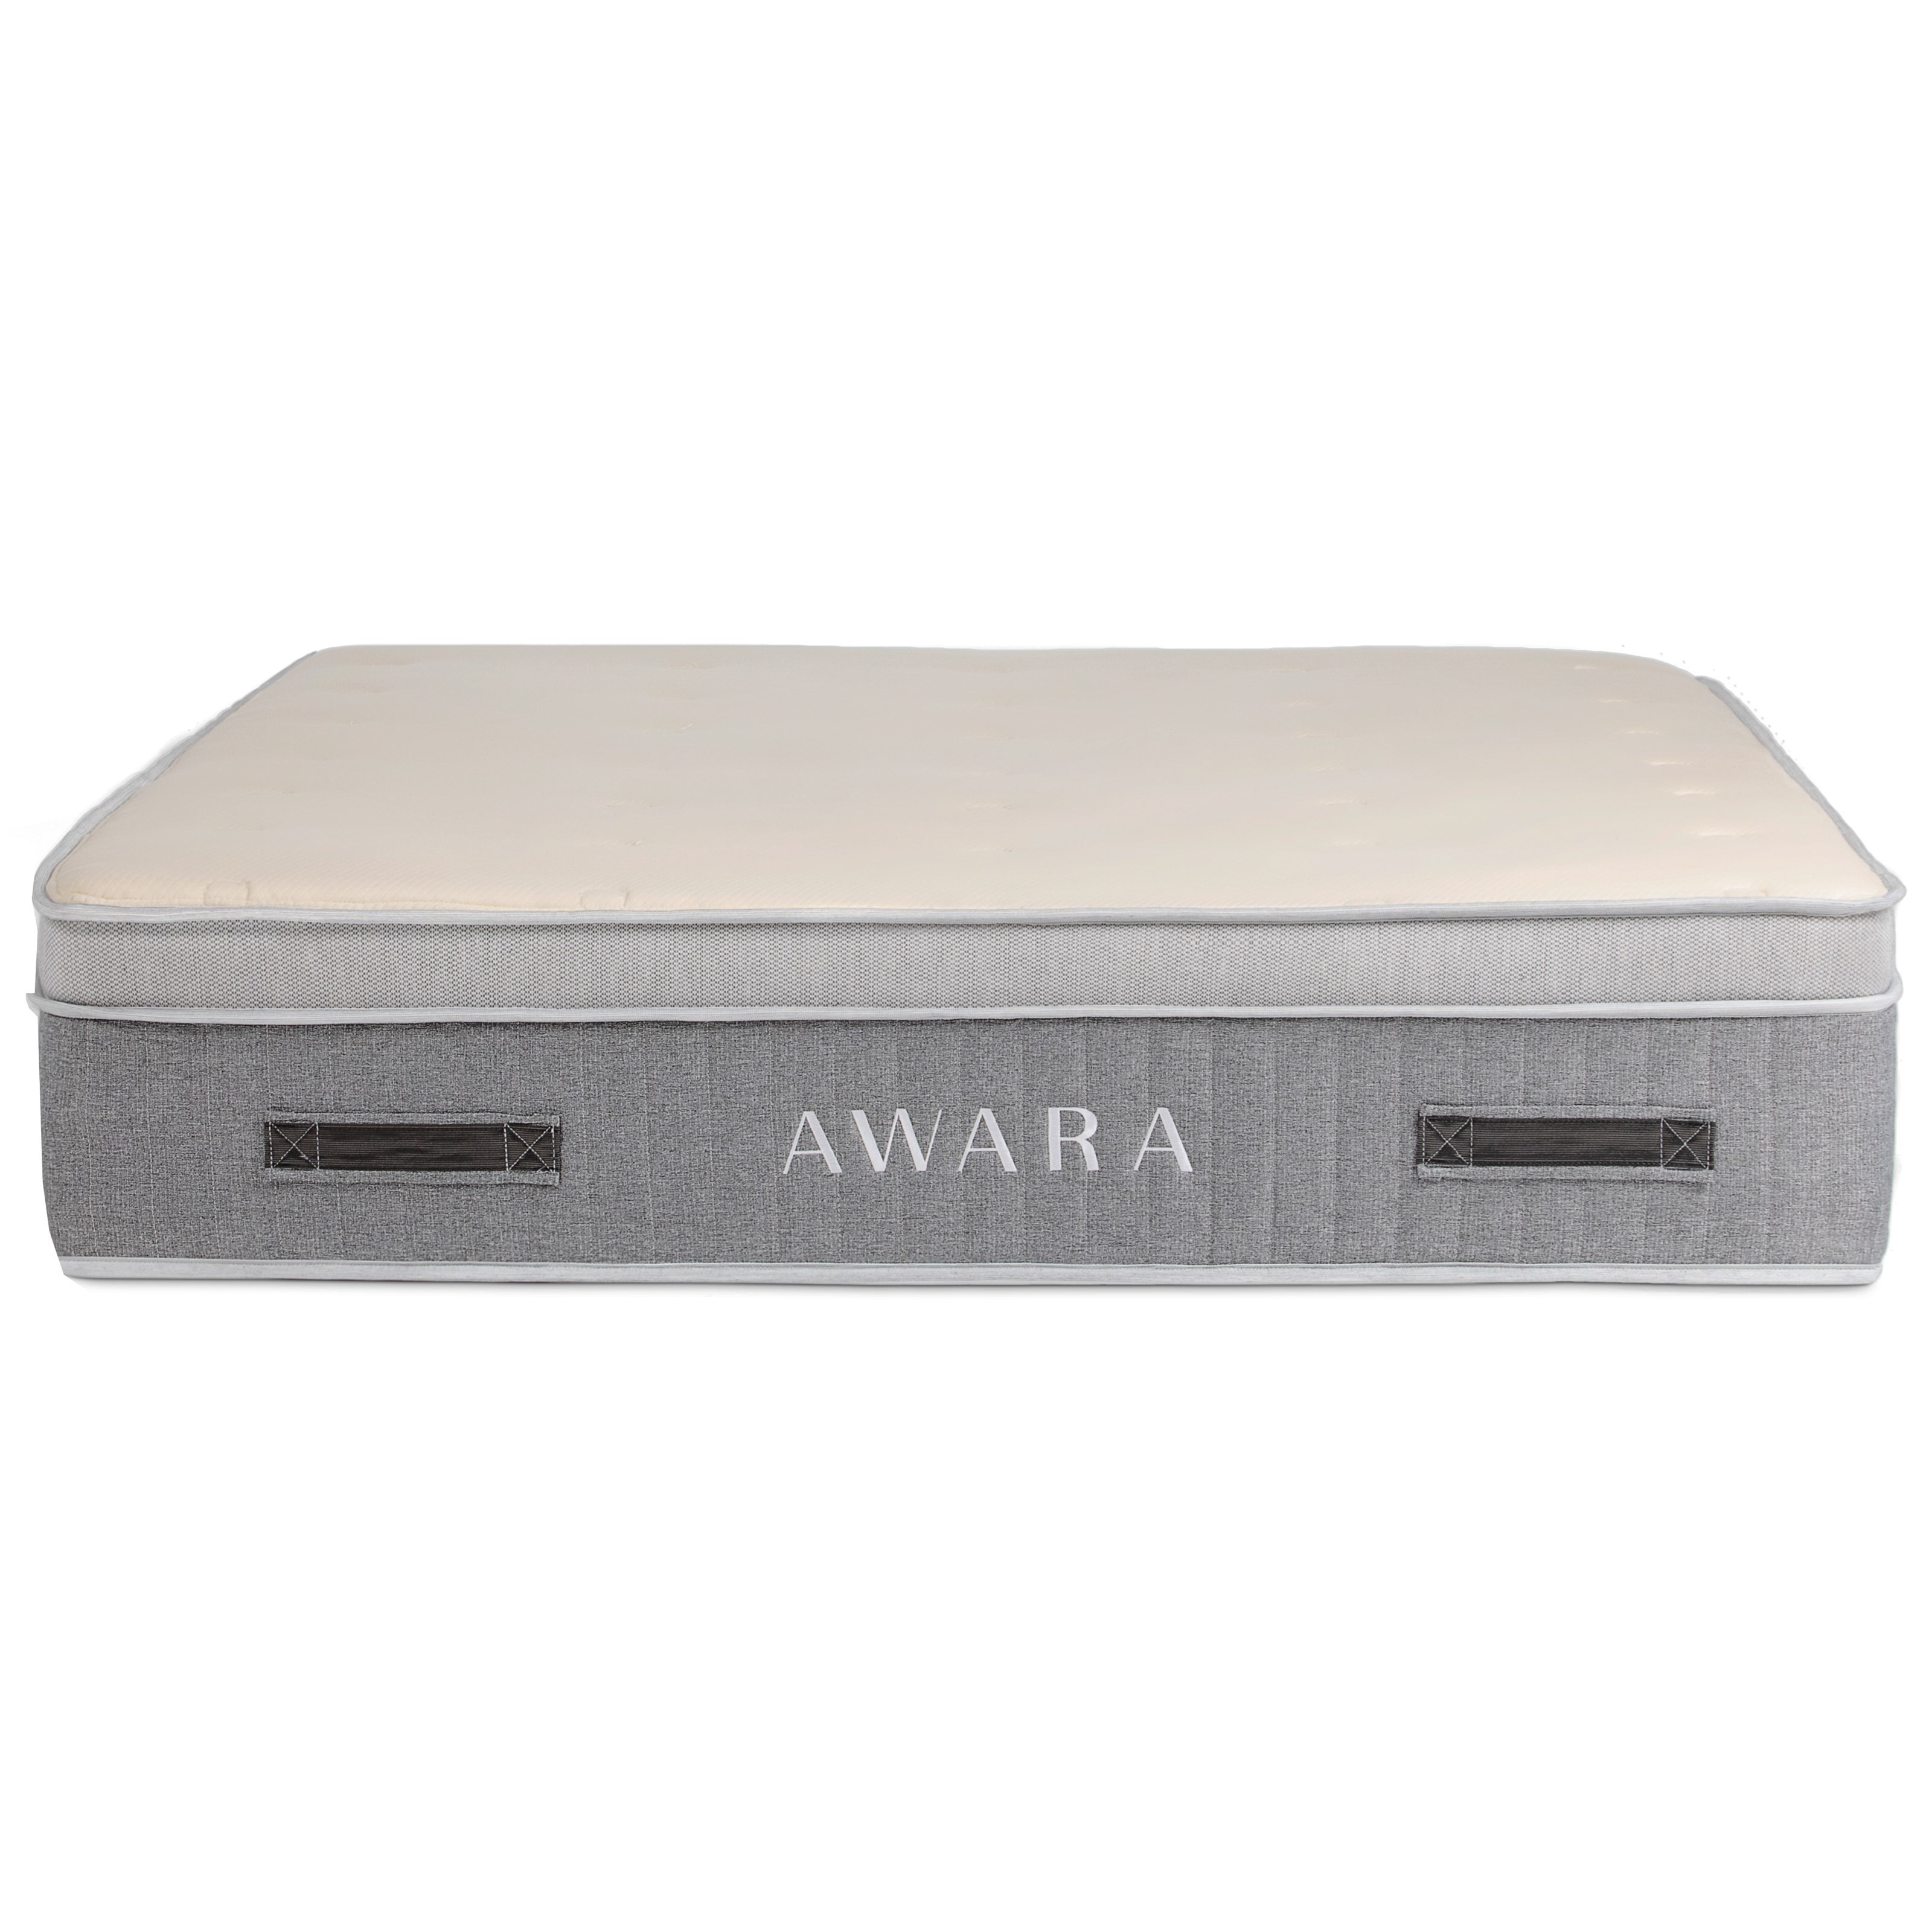 Nectar Aware Full Twin Latex Hybrid Euro Top Mattress by Nectar at Rooms and Rest